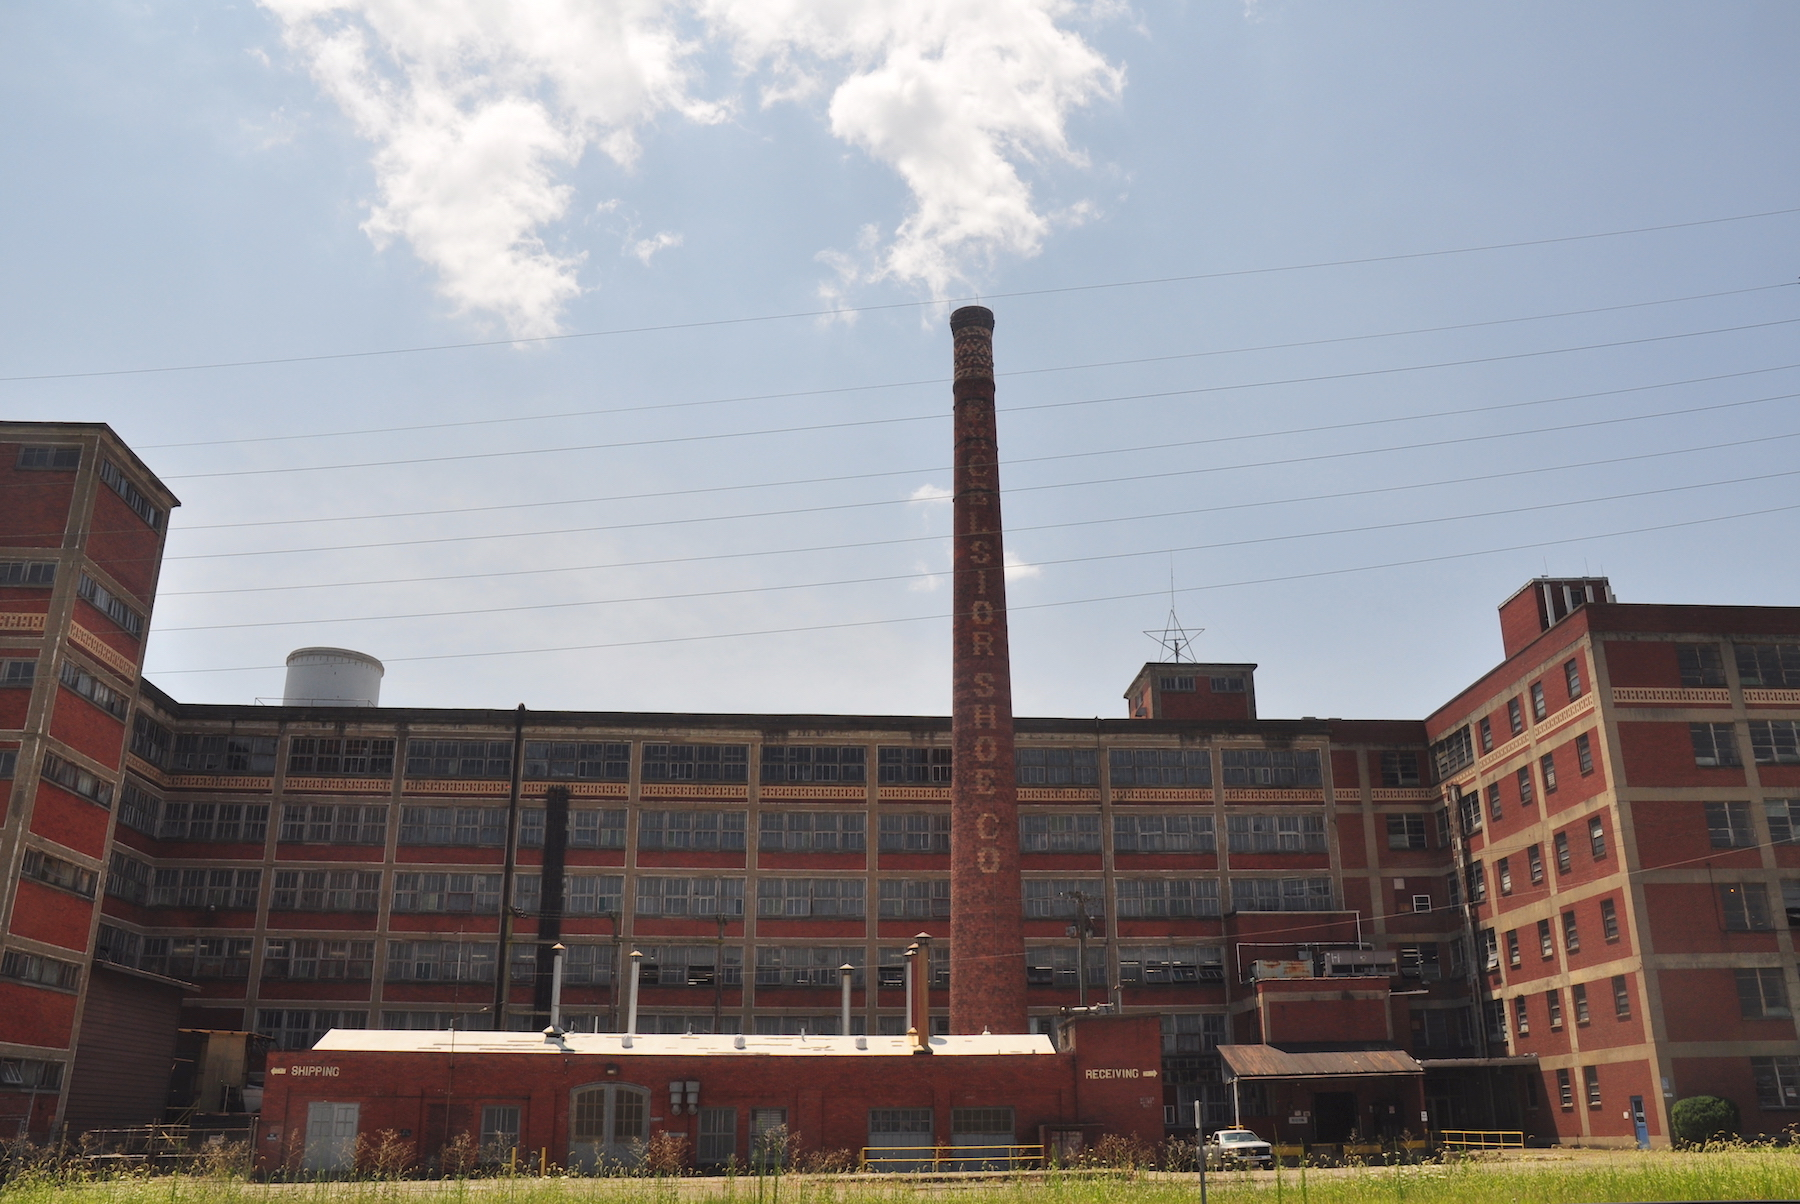 Towns with empty factory buildings, out of work people, poor education, are victims of drugs.